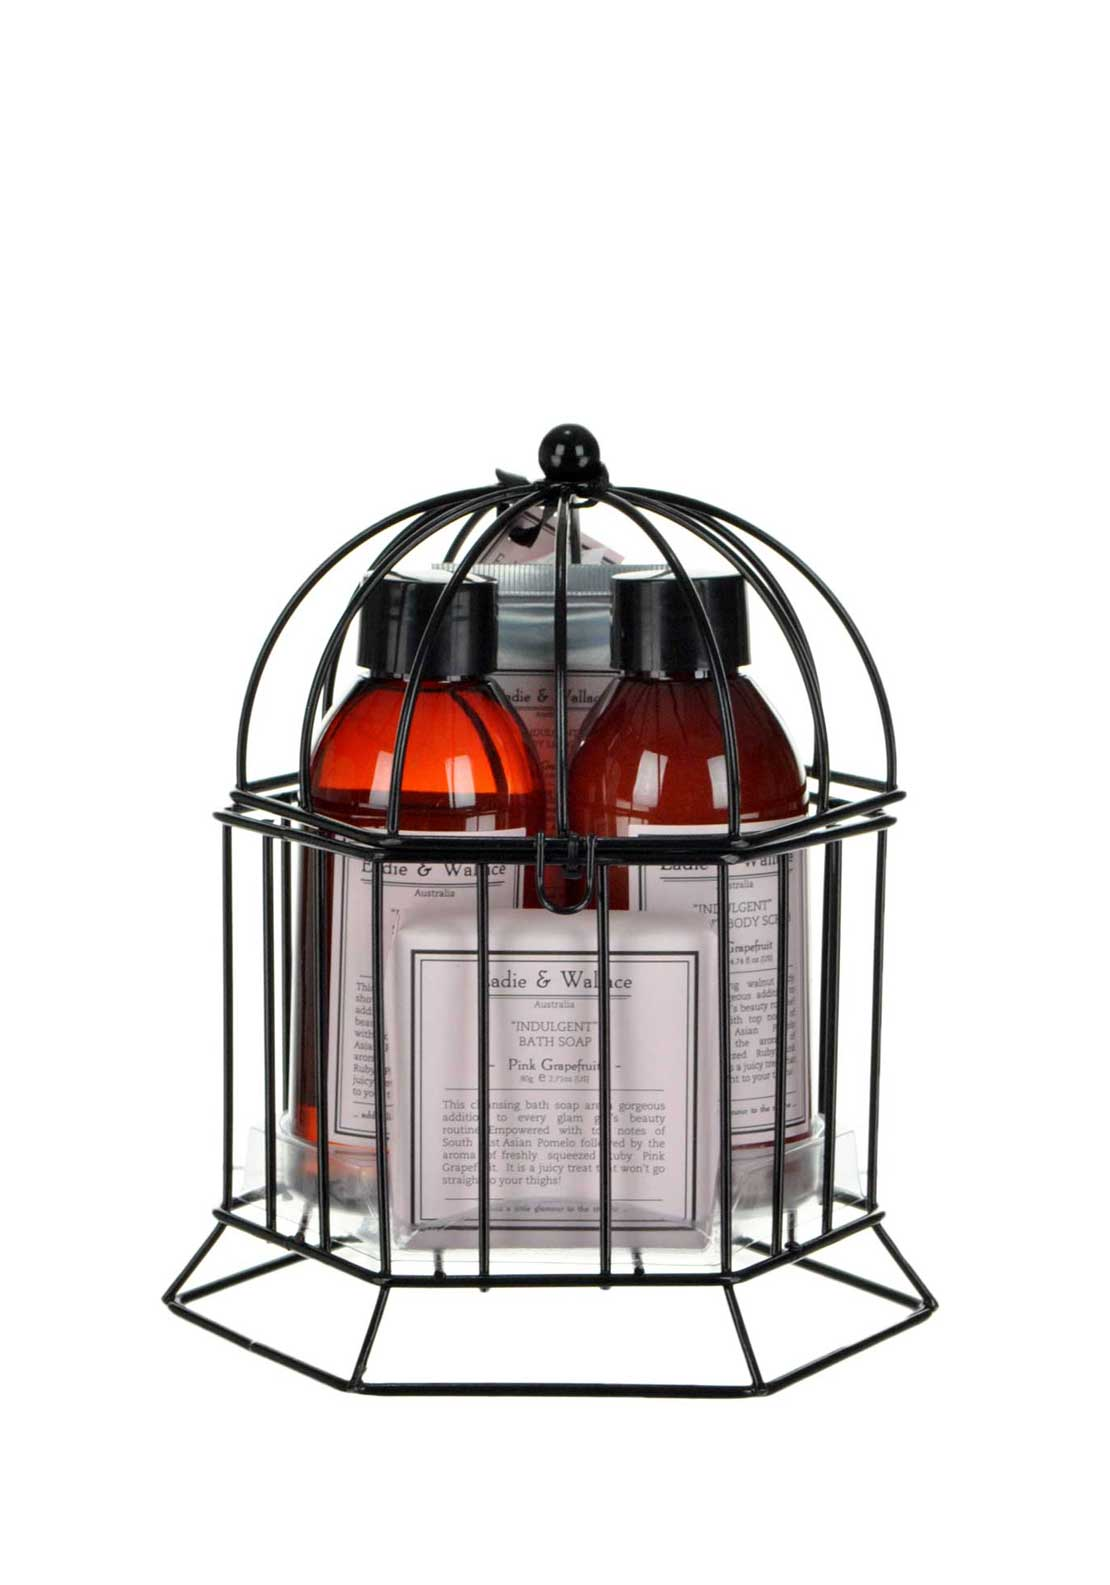 Eadie & Wallace Indulgent Small Bird Cage Shower Gift Set, Pink Grapefruit